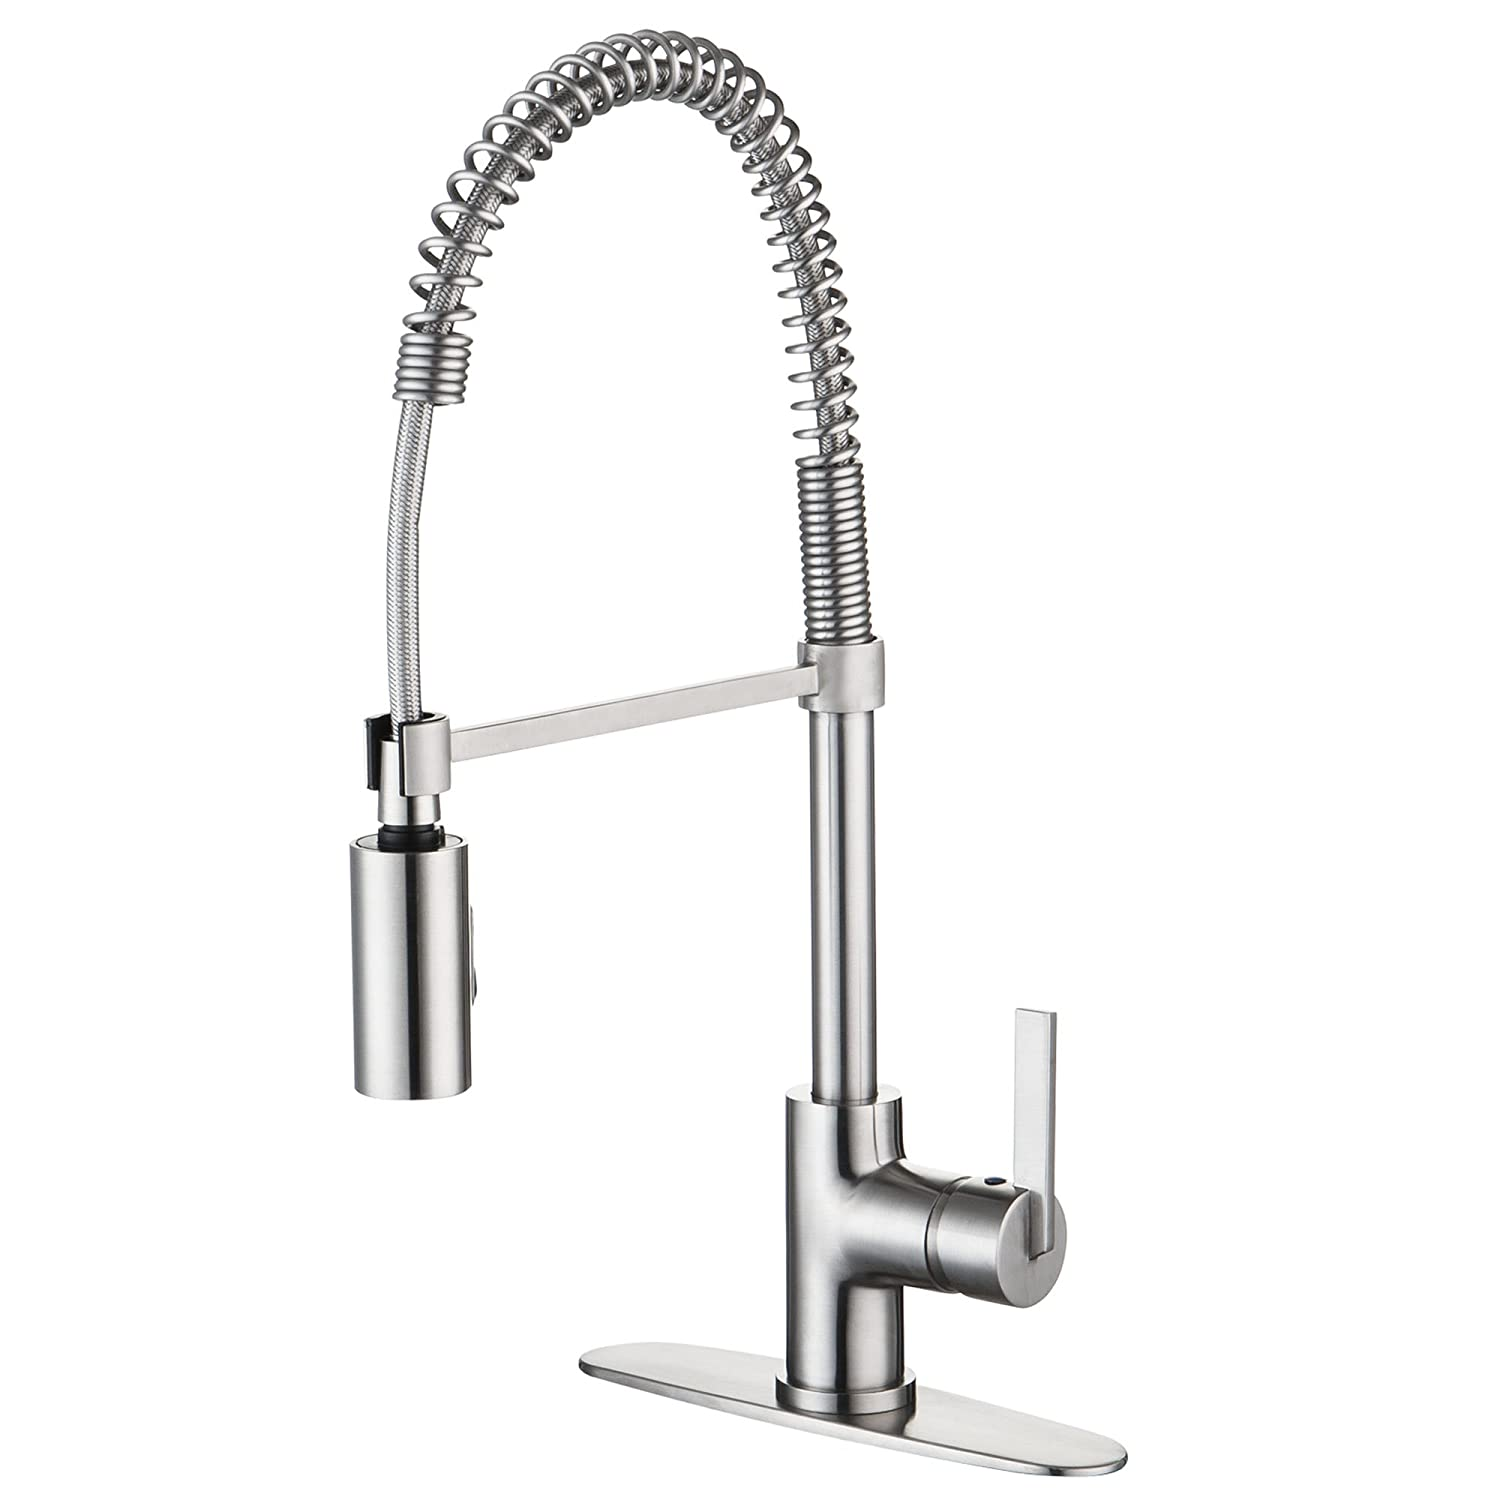 enzo rodi erf7209251ap 10 modern commercial kitchen faucet with enzo rodi erf7209251ap 10 modern commercial kitchen faucet with pull down sprayer stainless steel amazon com